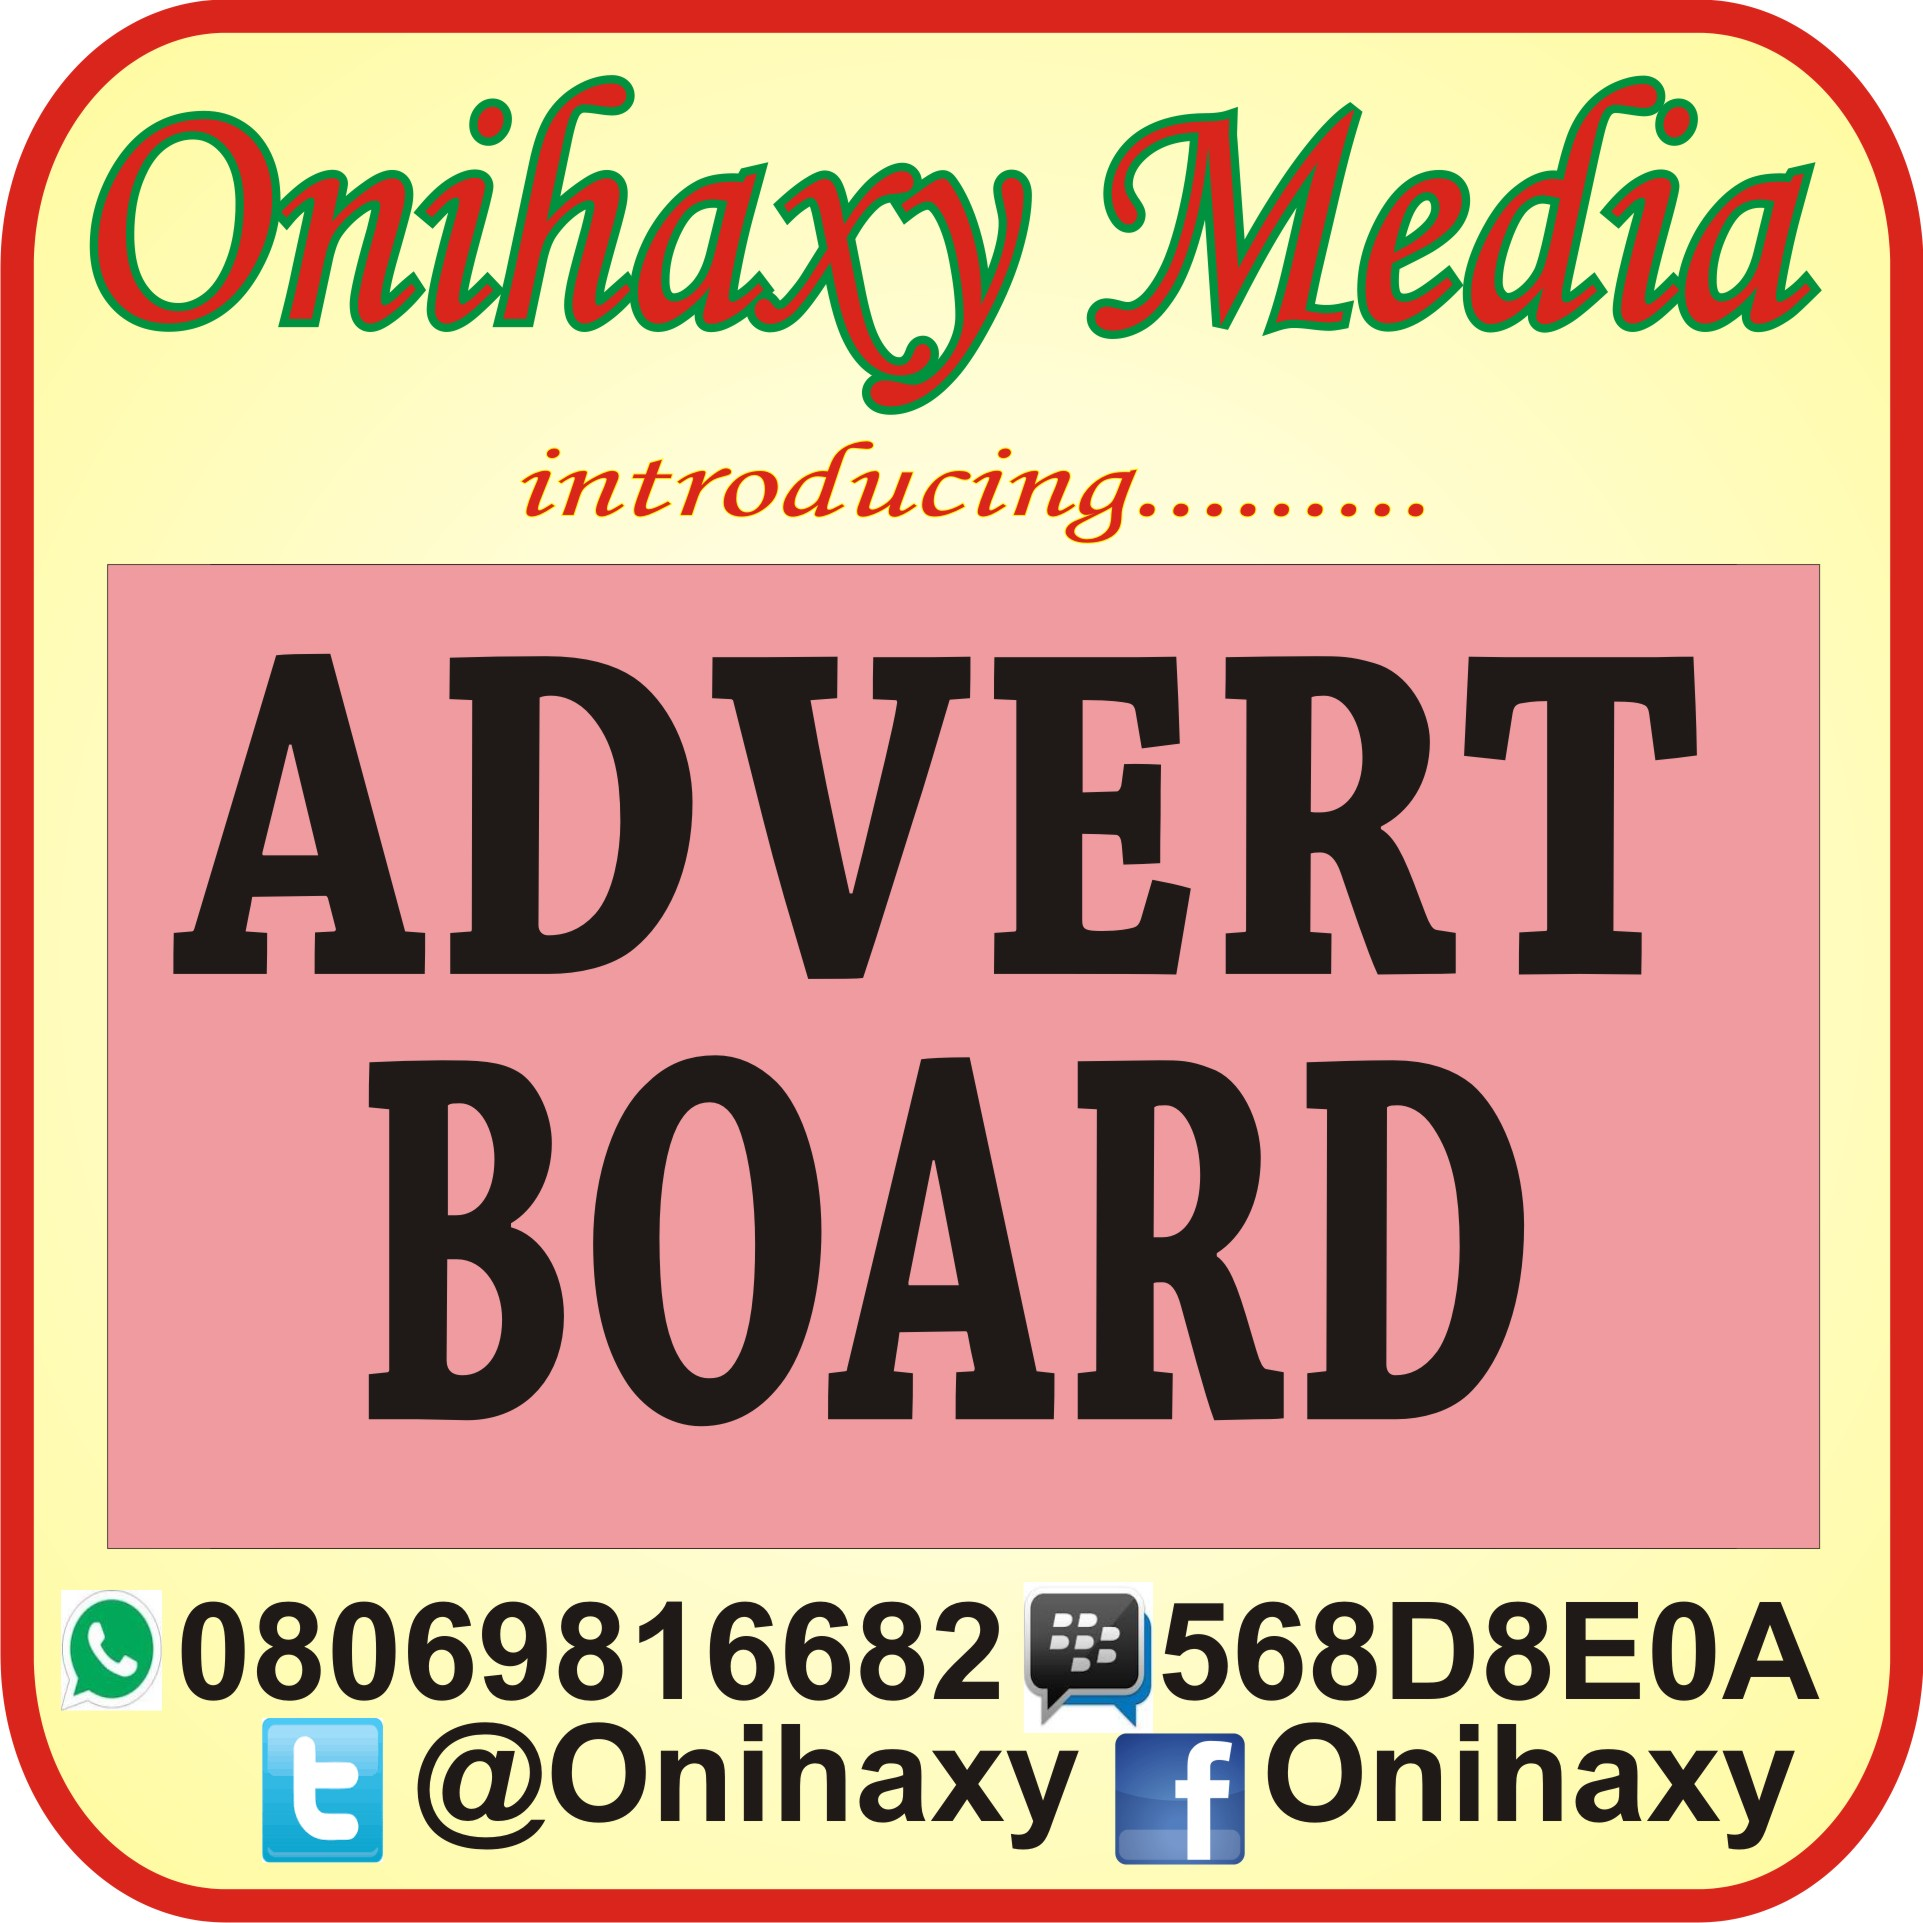 ADVERT BOARD